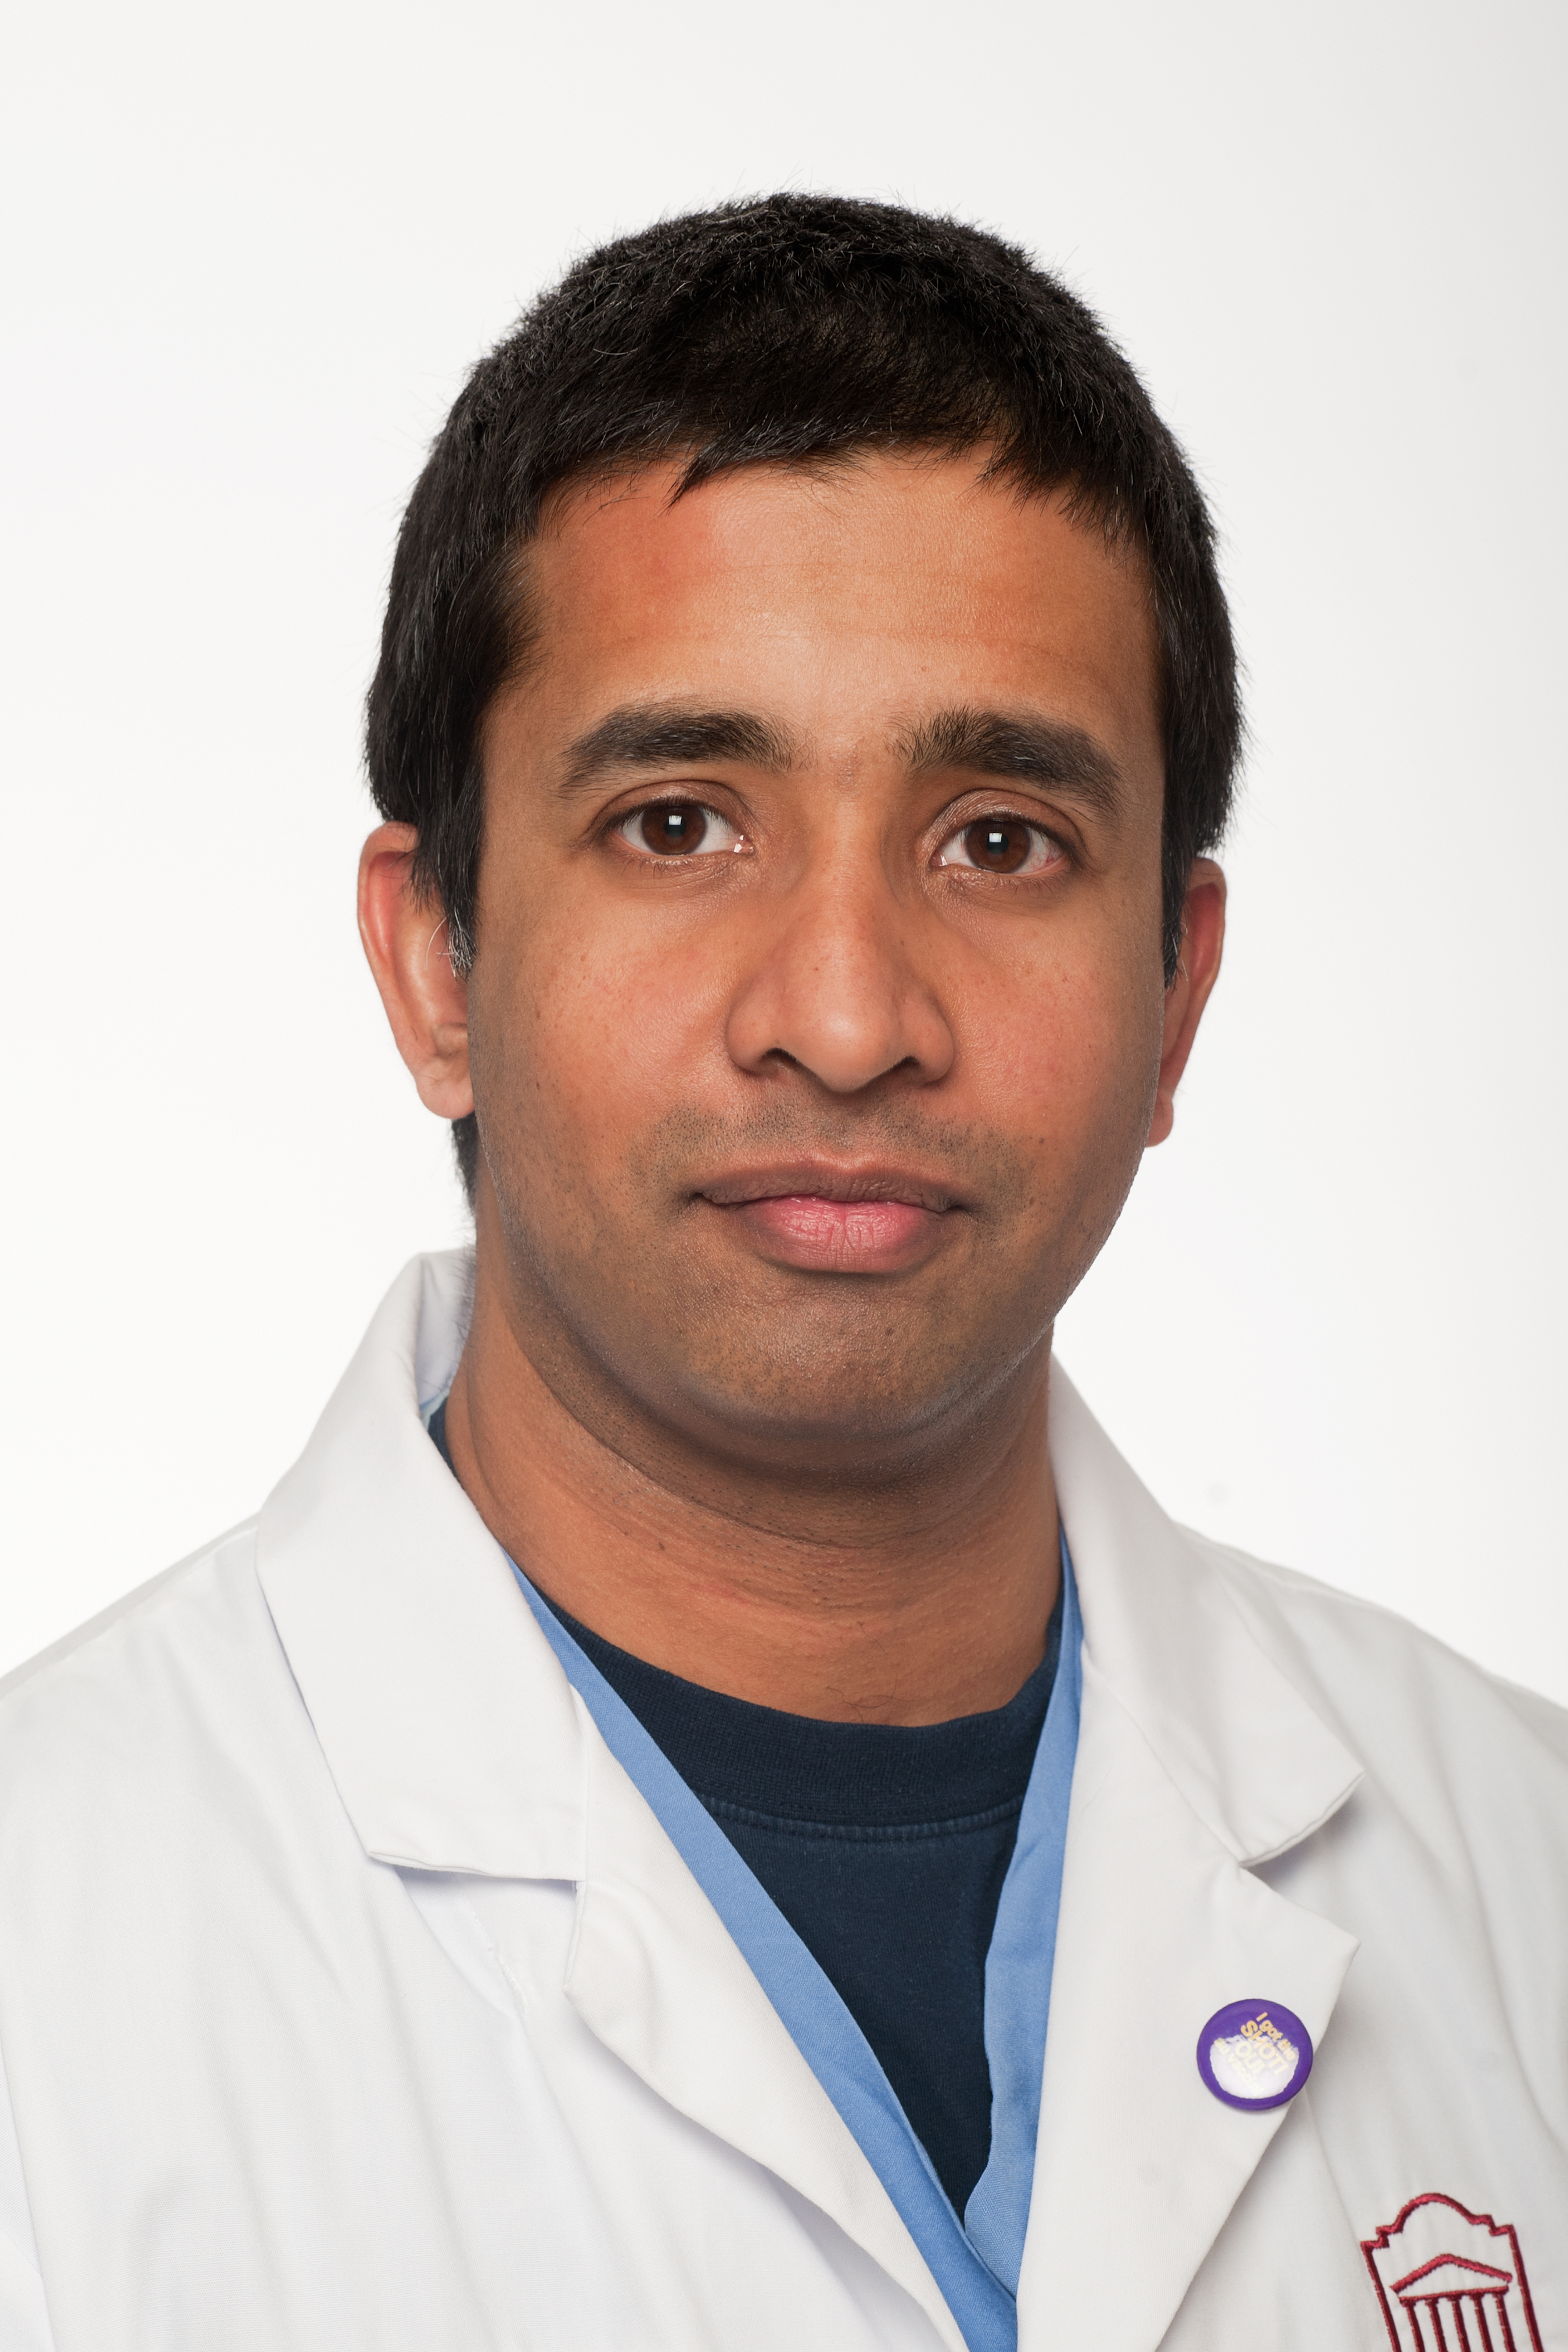 Dr. Naveen Eipe